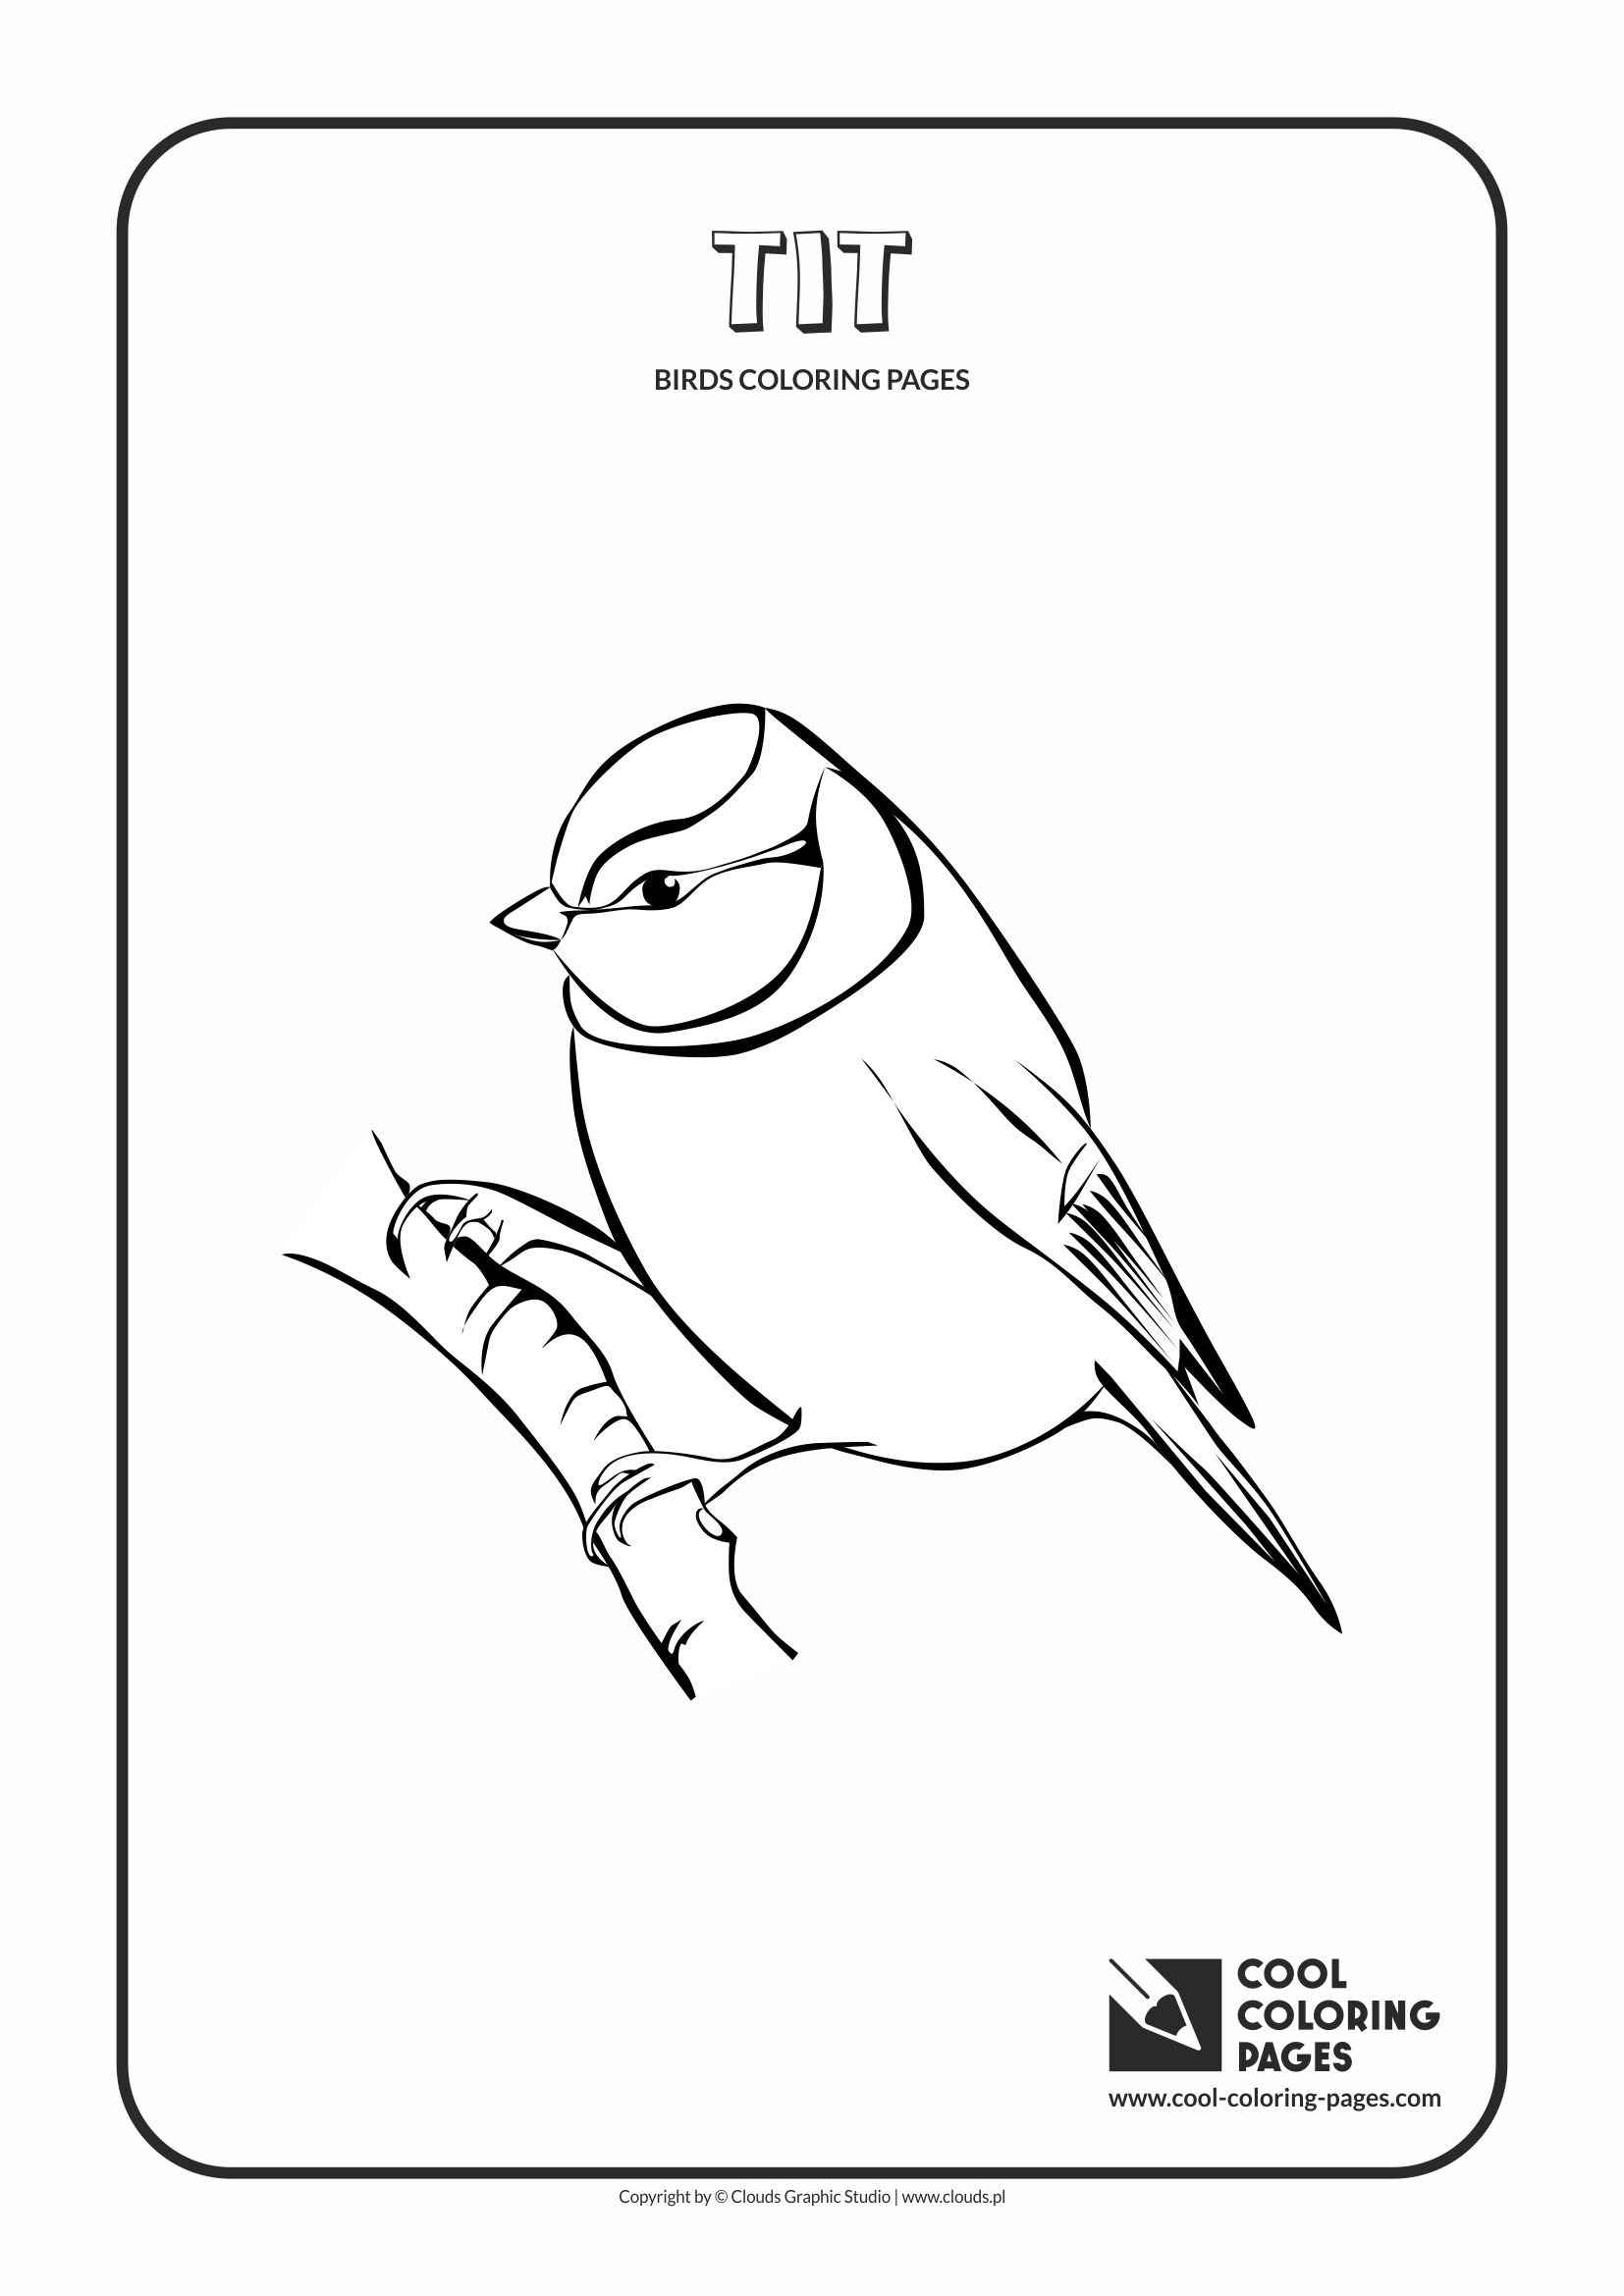 Cool Coloring Pages - Animals / Tit / Coloring page with tit